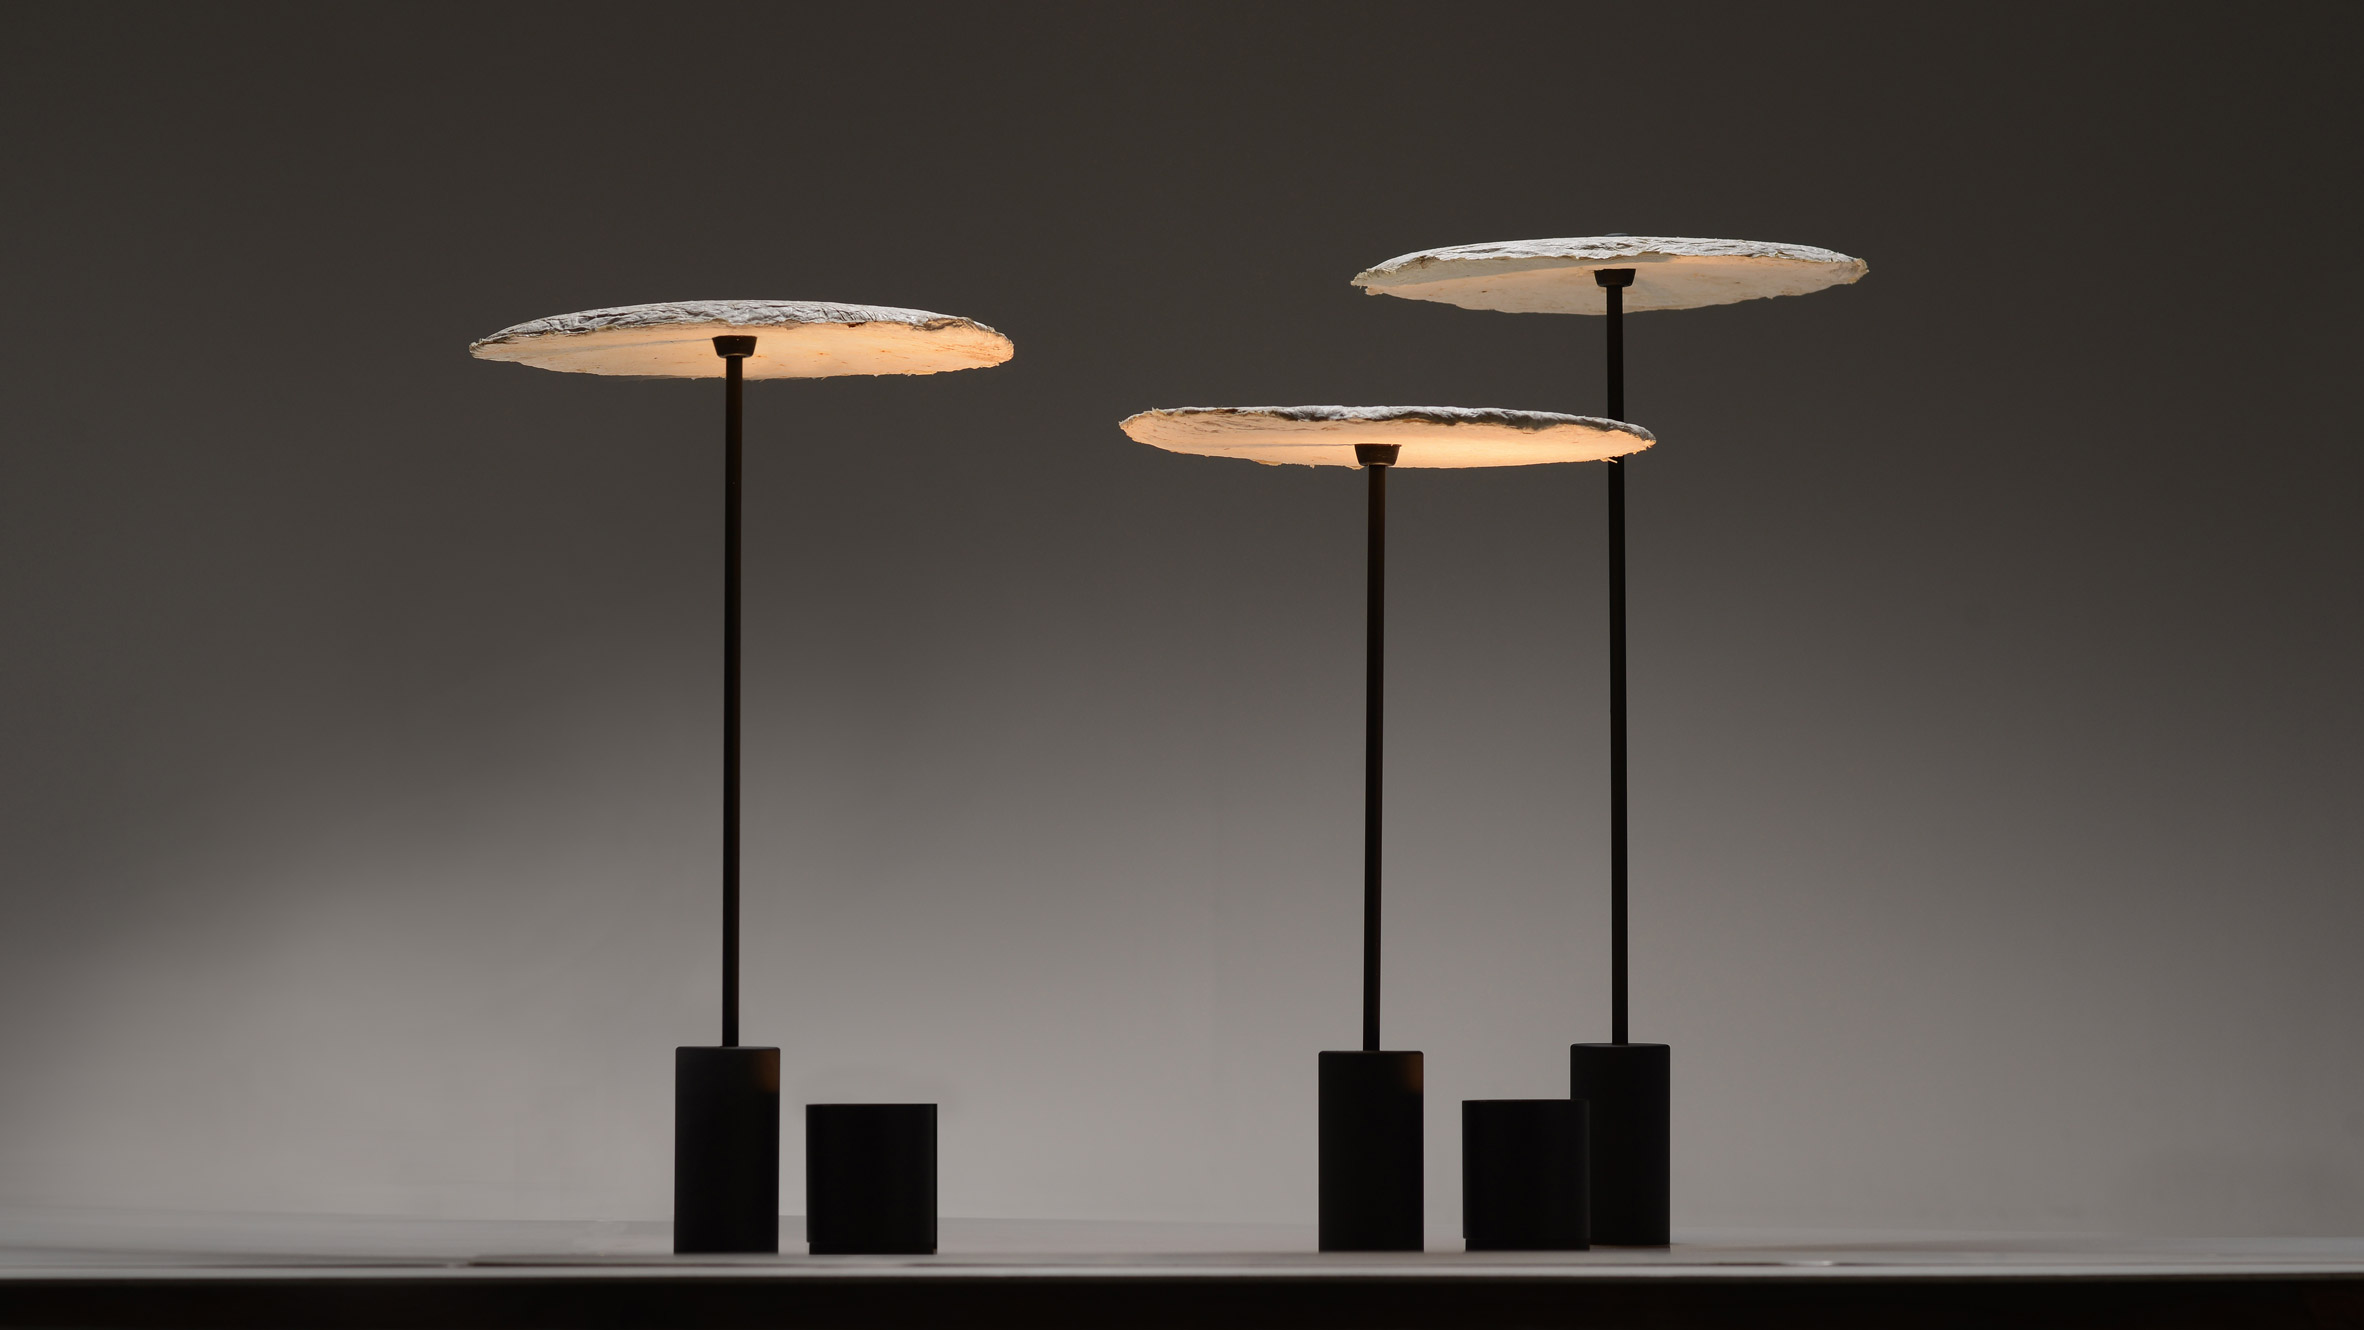 mycelium-lights-design_dezeen_2364_hero-1.jpg